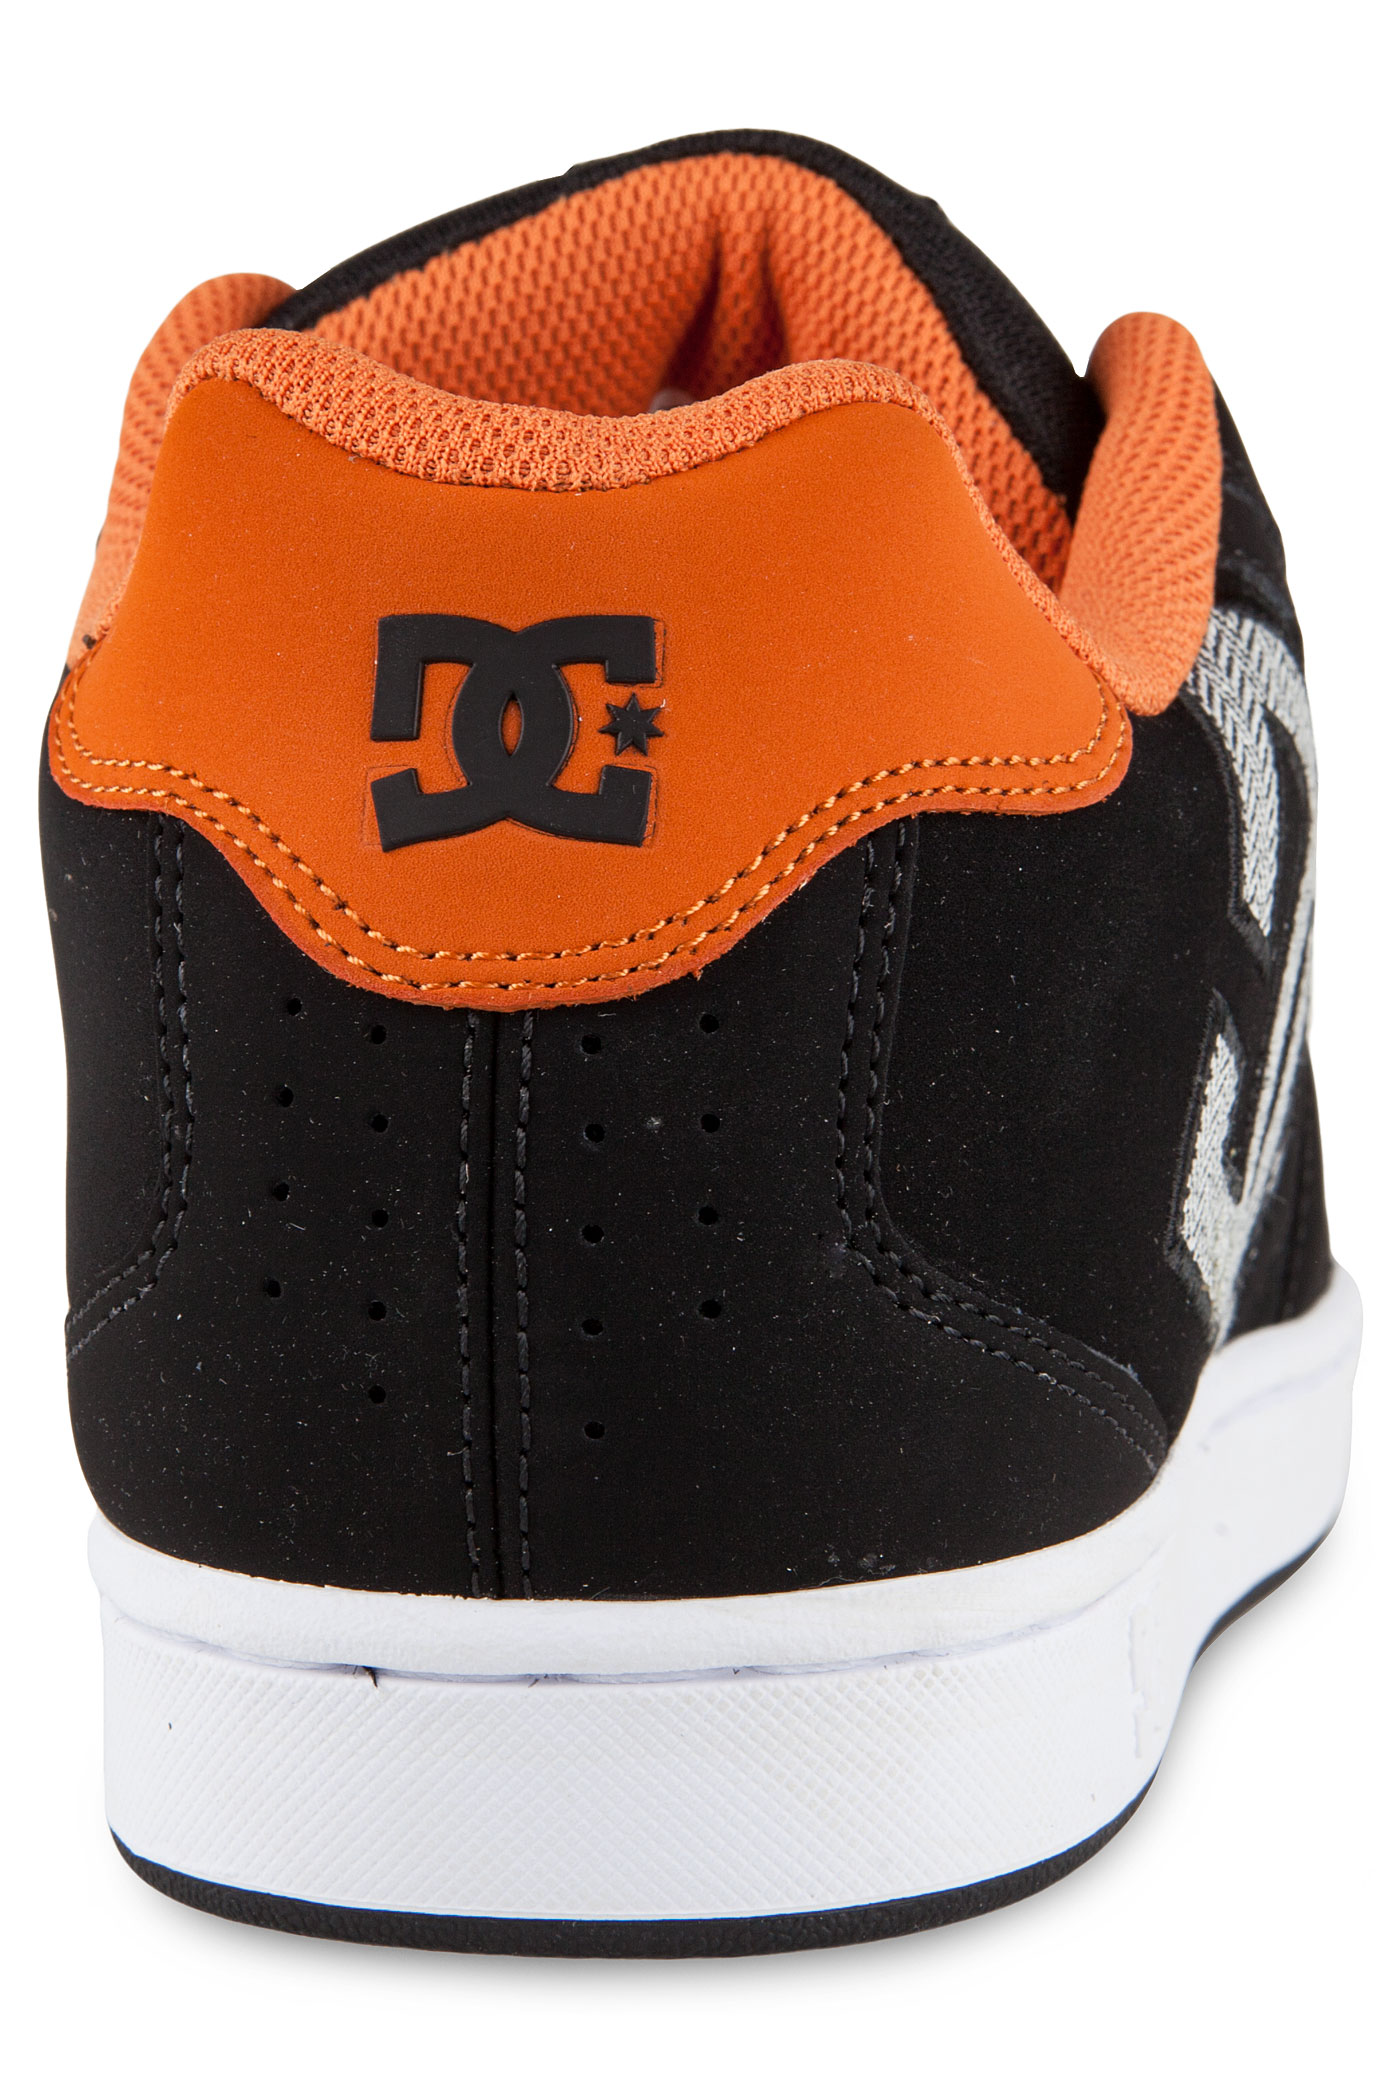 dc net leather shoes black orange buy at skatedeluxe